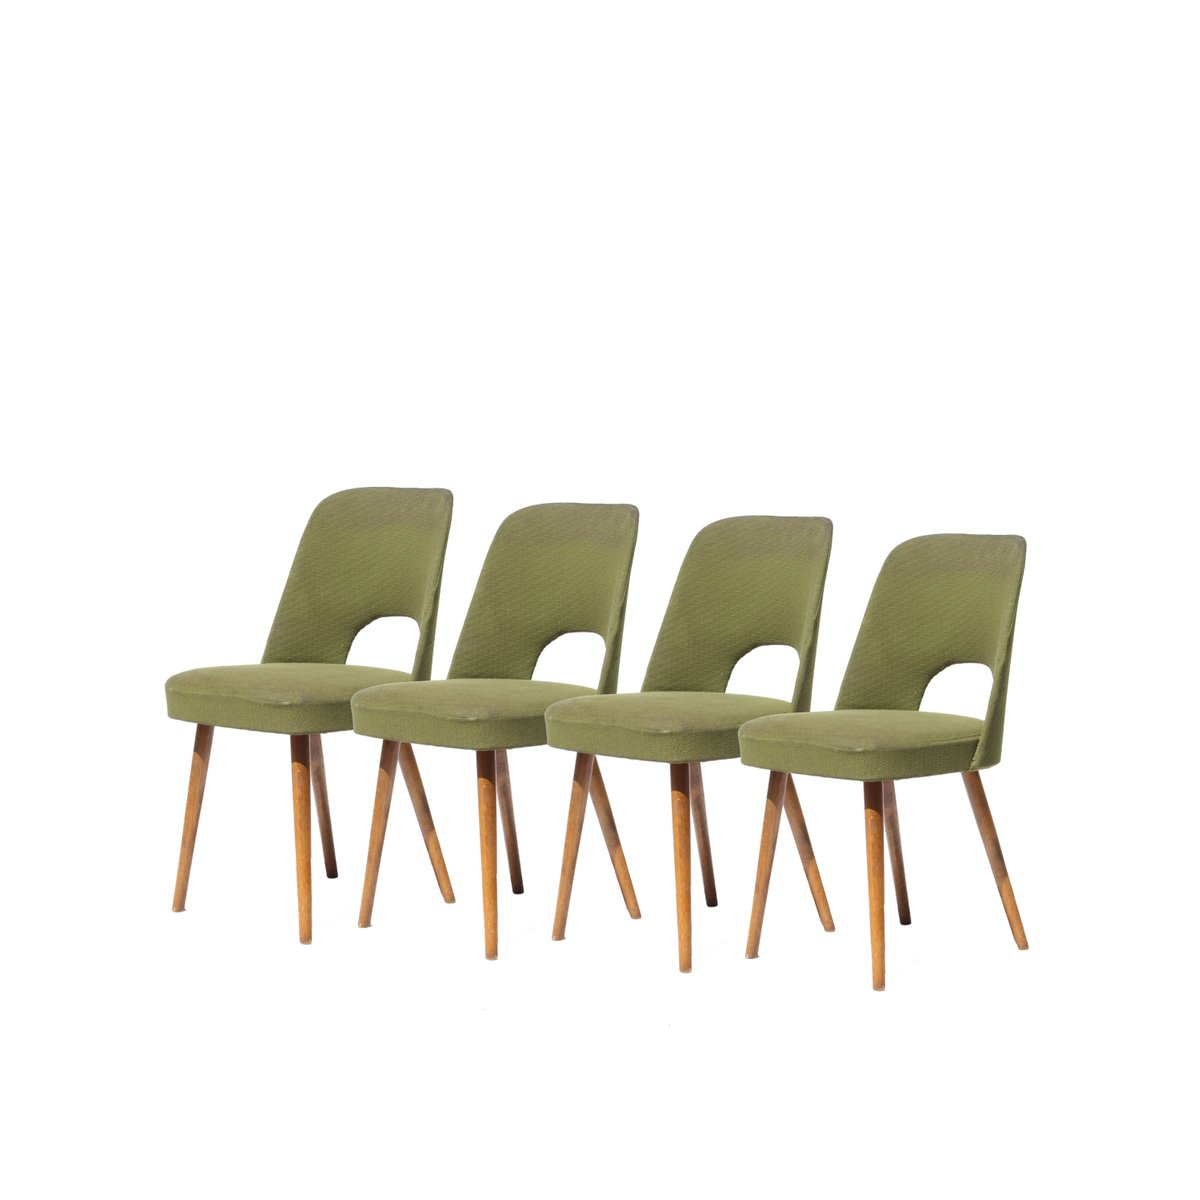 midcentury czech green dining chairs s set of . midcentury czech green dining chairs s set of  for sale at